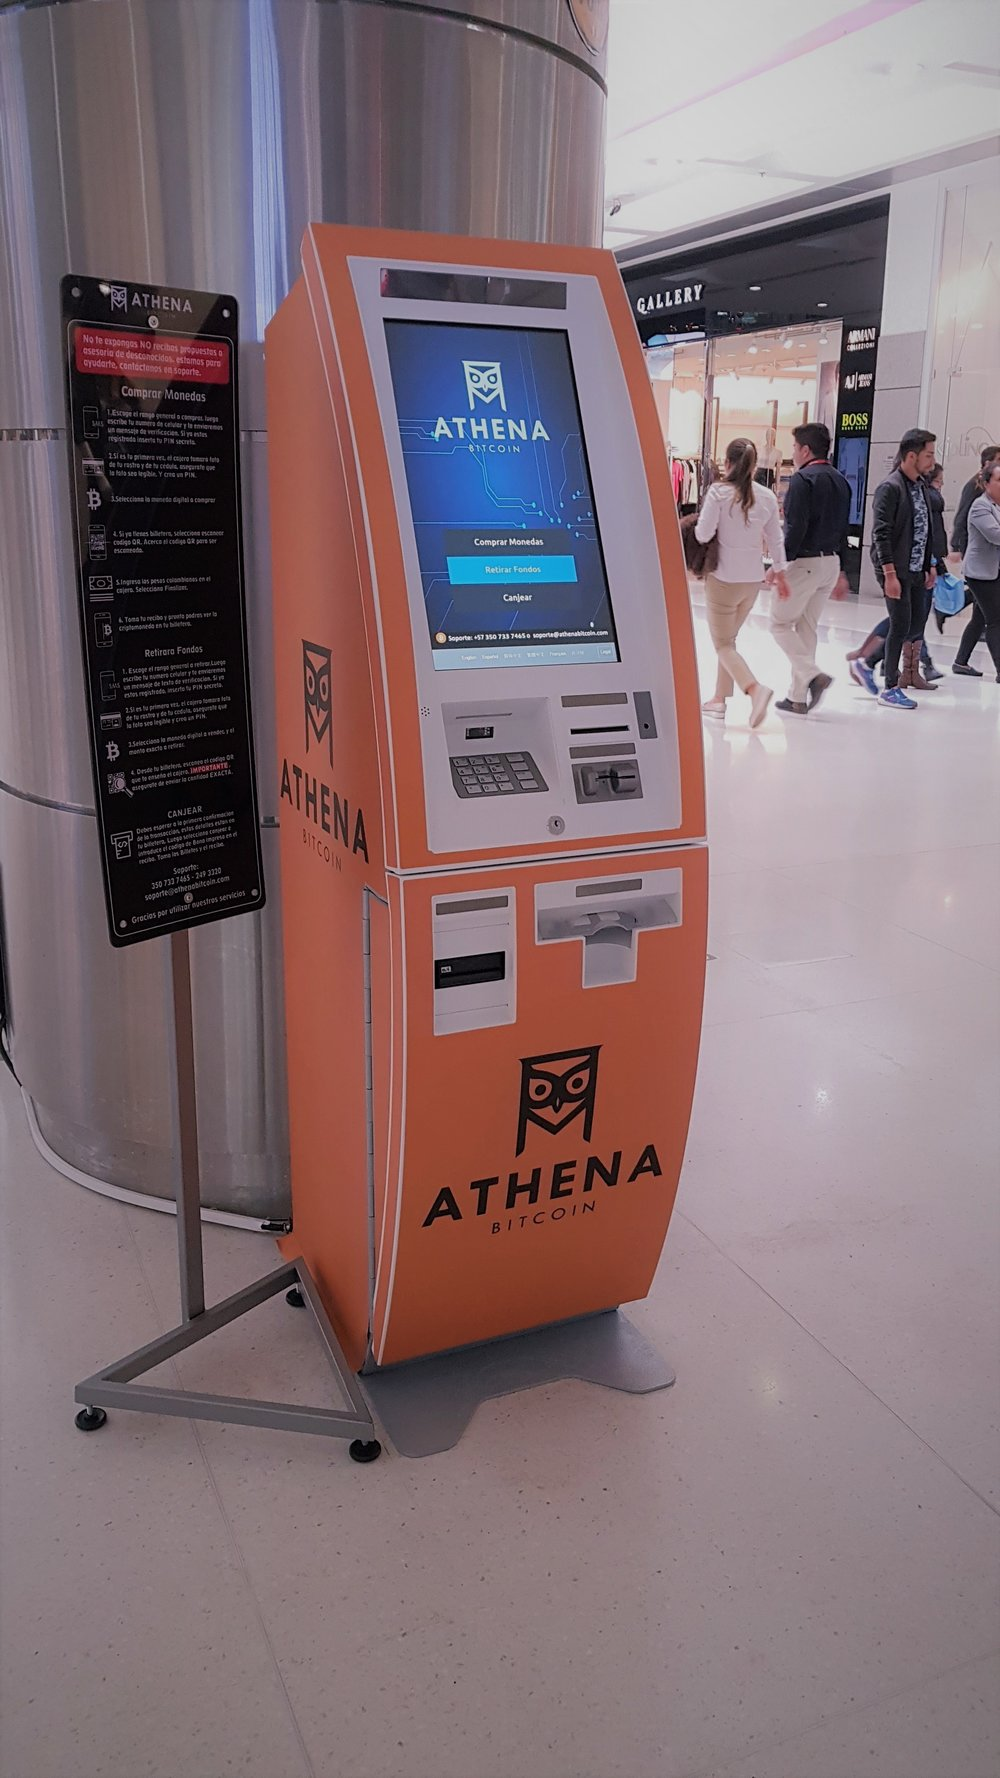 Athena ATM at the Gran Estación shopping center in Bogota